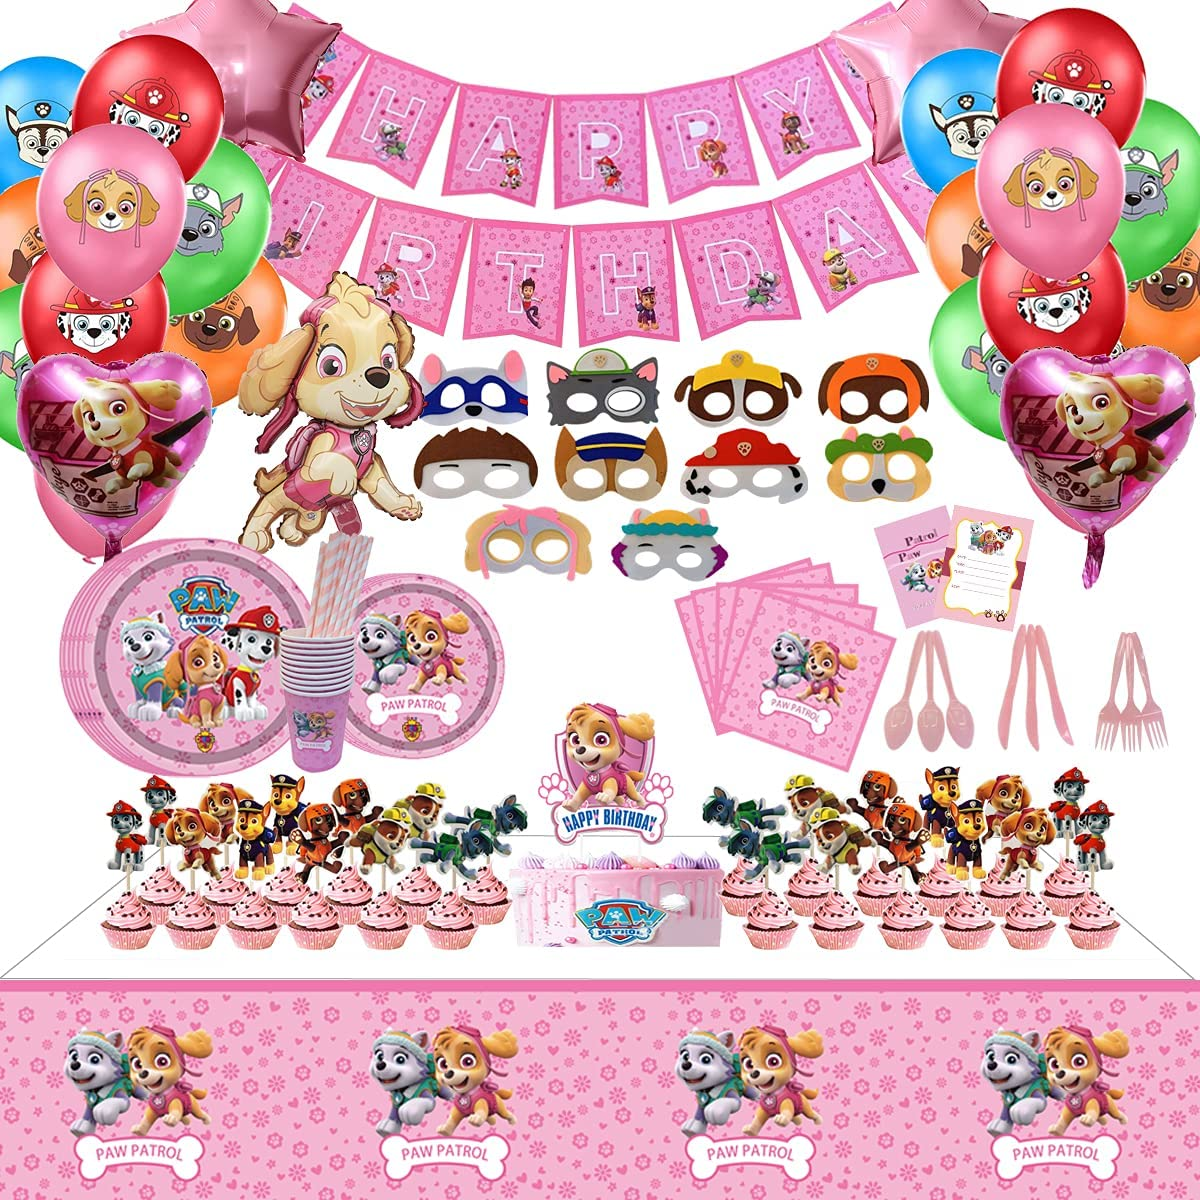 169pcs Pink Paw Patrol Max 86% OFF Party Cheap super special price Decor Dog Supplies theme Birthday